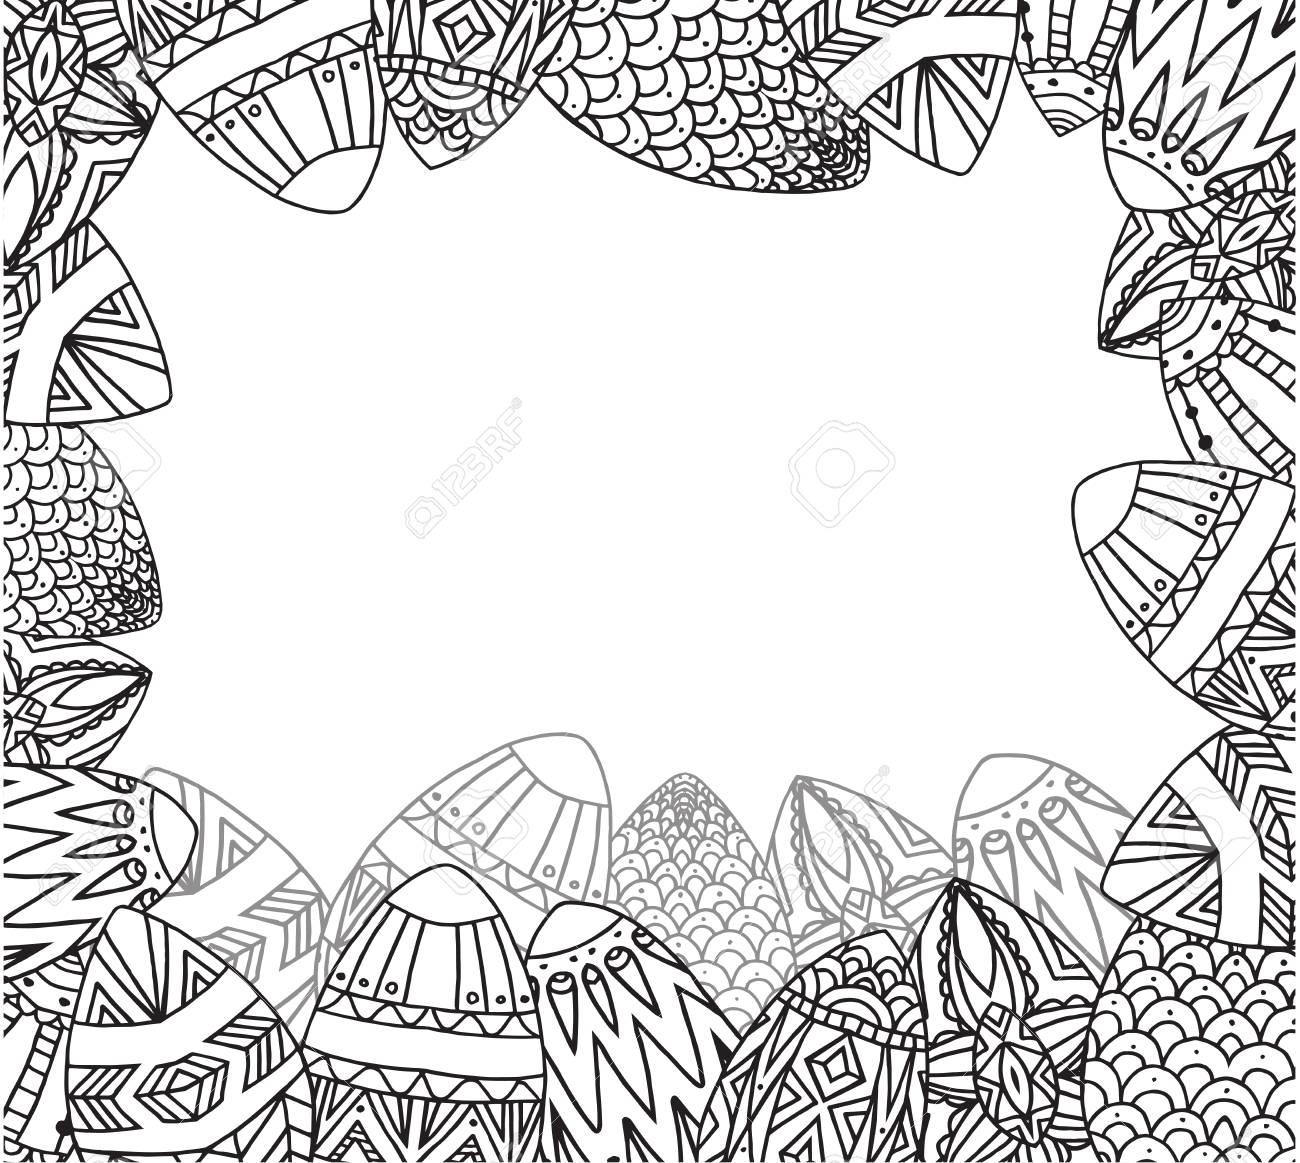 Greeting Card With Doodle Festive Eggs With Boho Pattern And